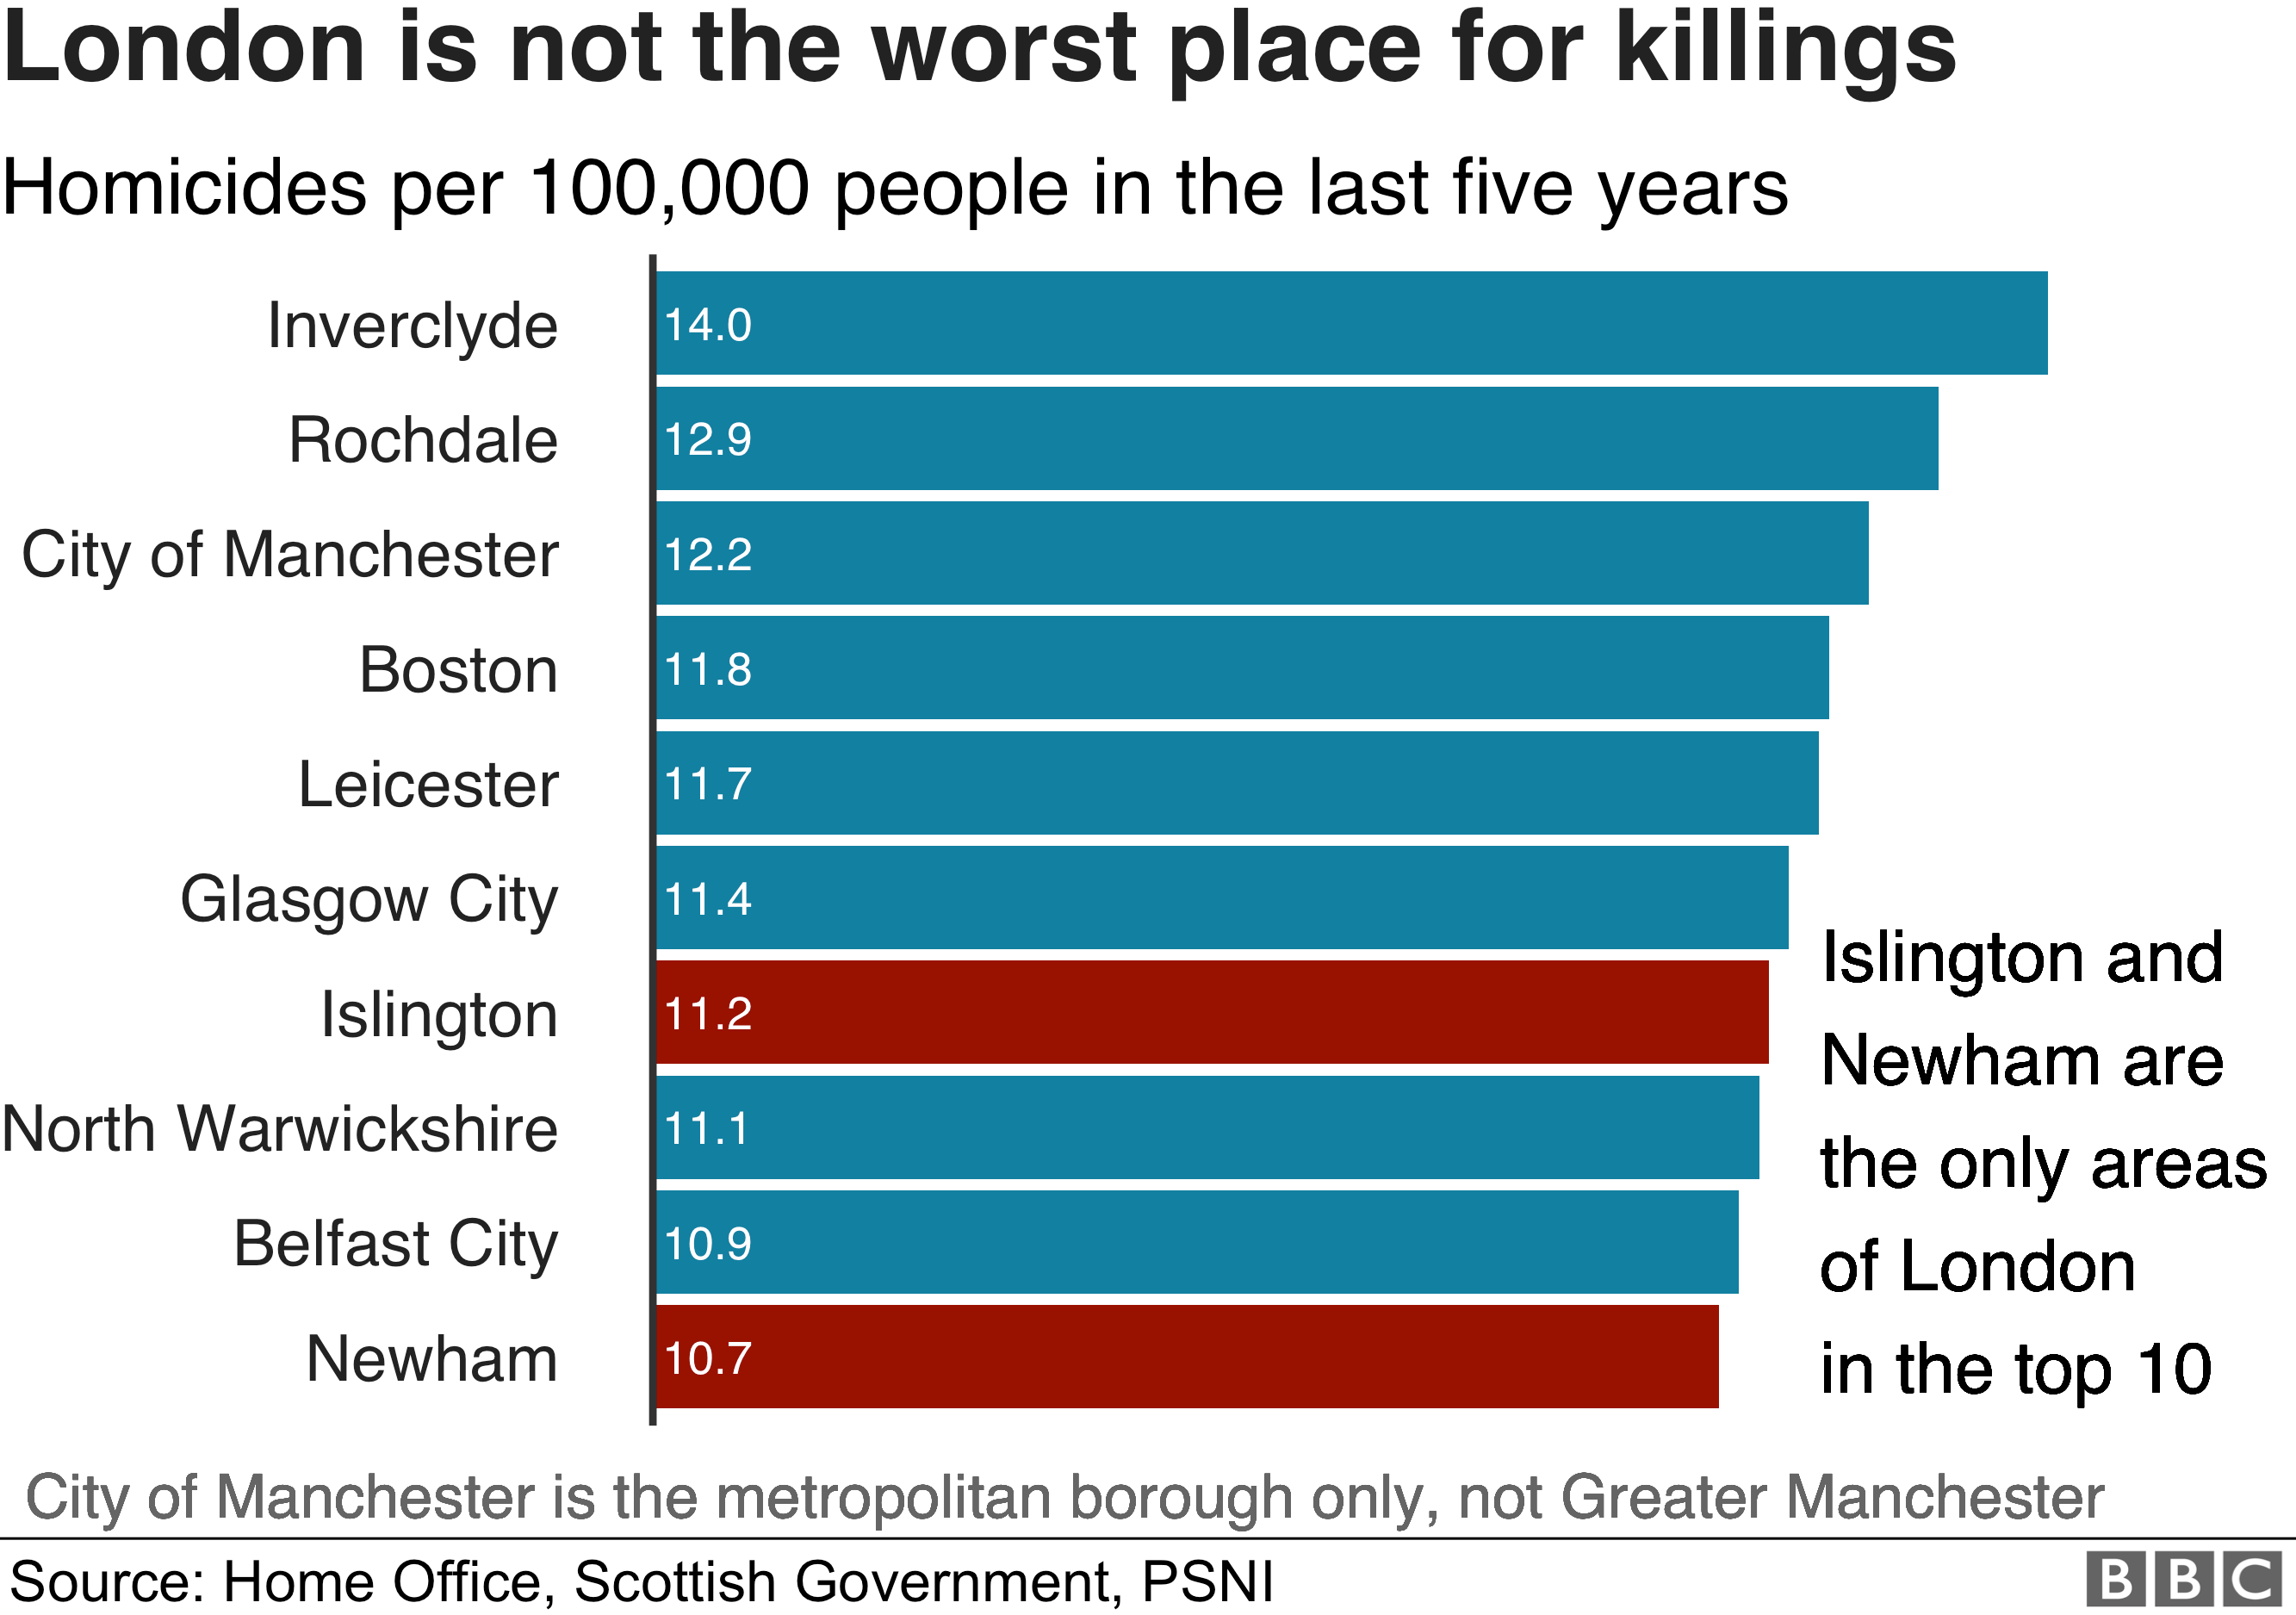 London is not the worst place for killings